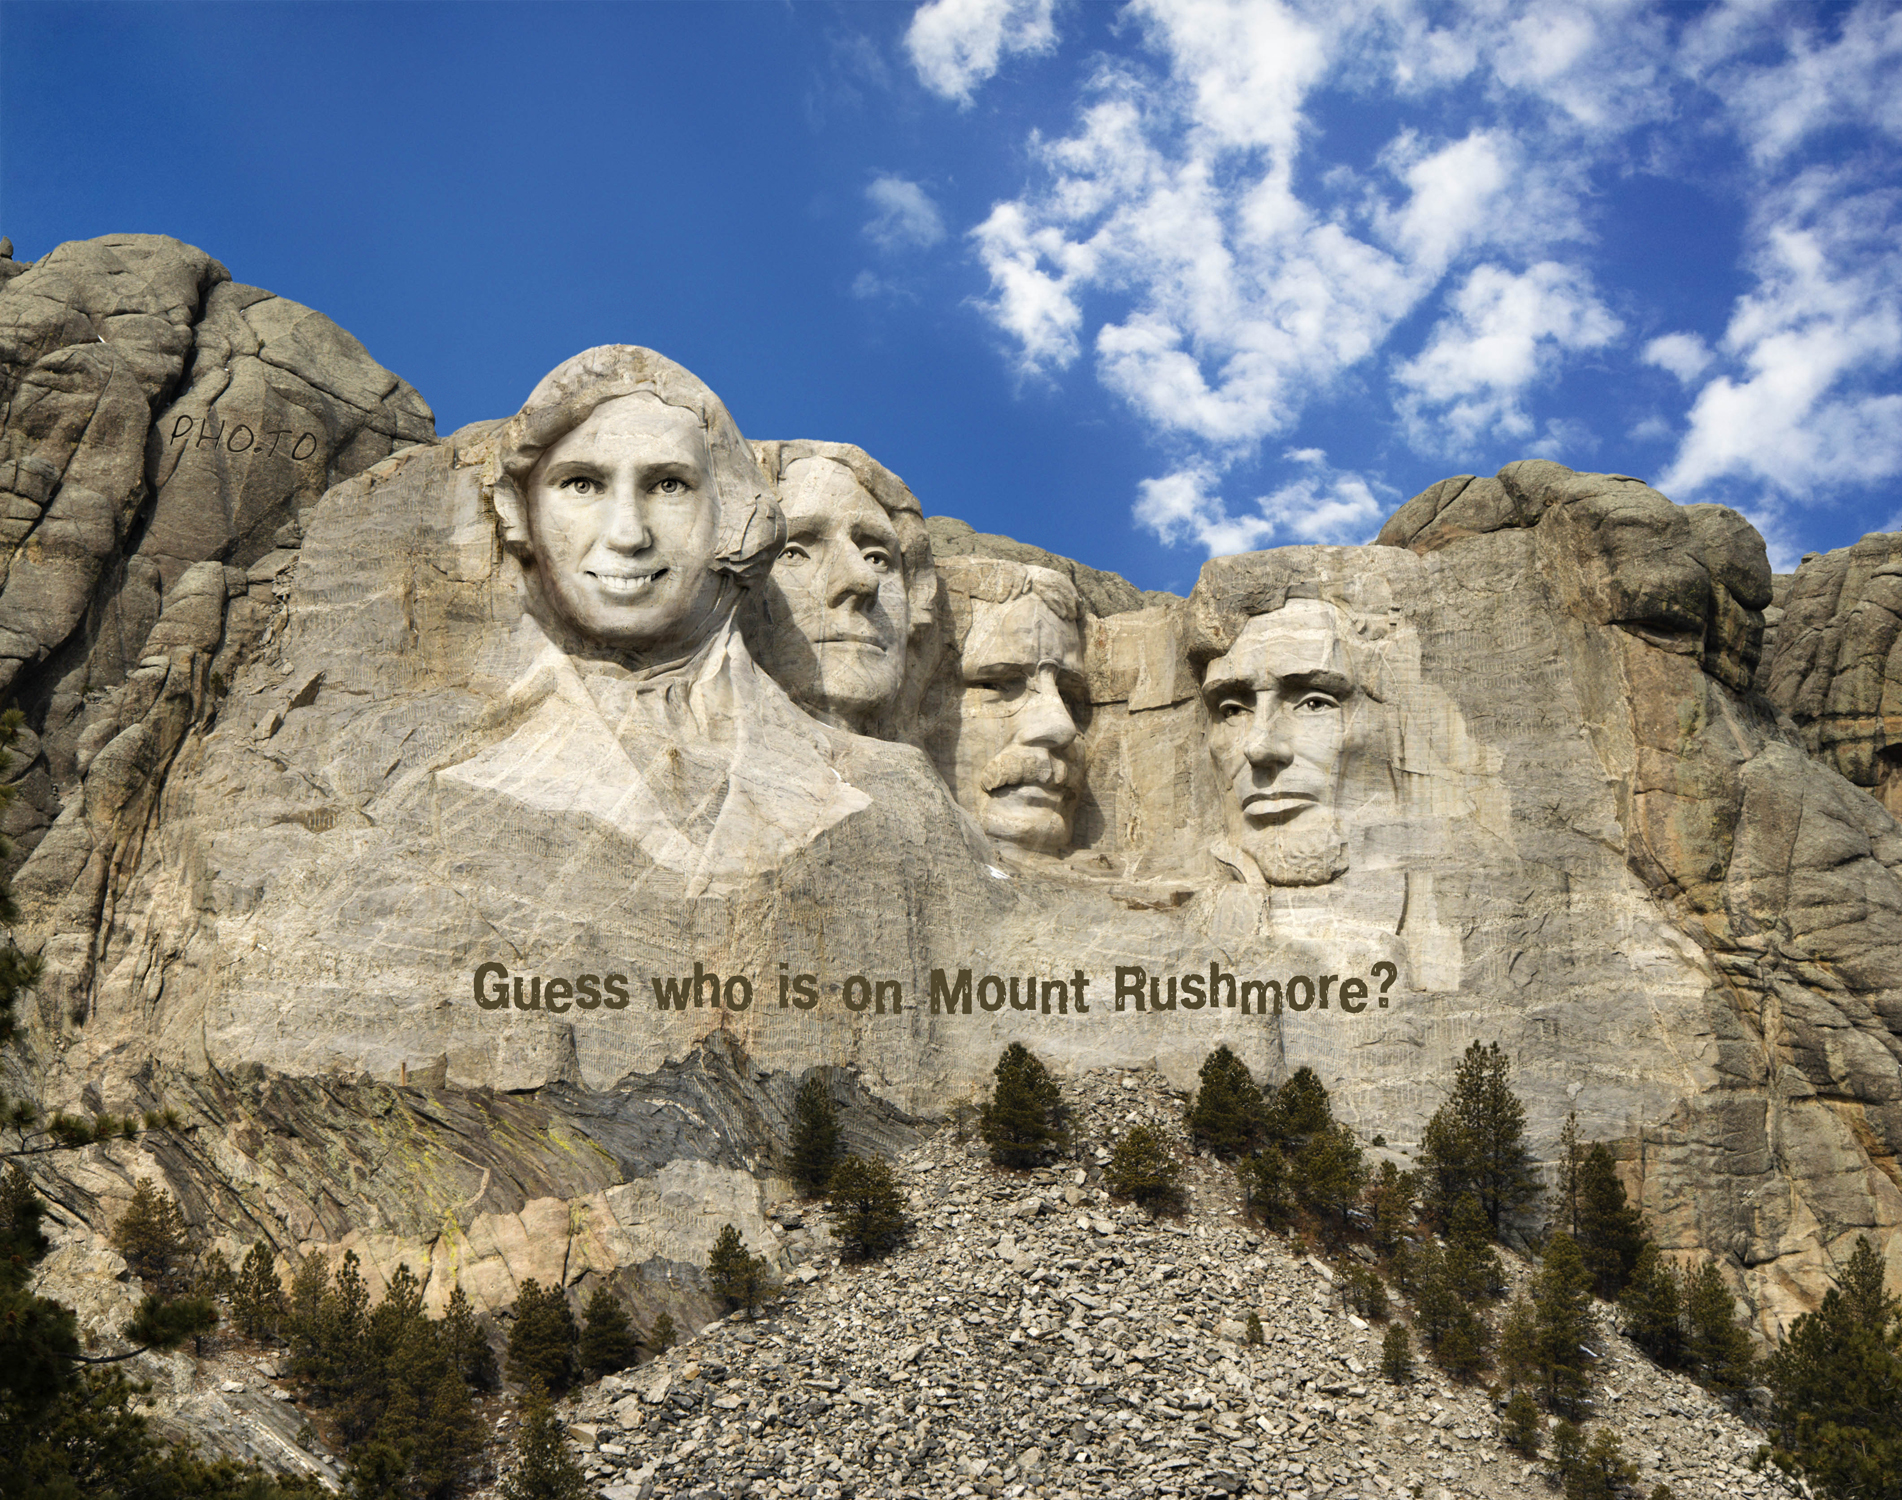 Get turned into one of the presidents on the Rushmore Mountain